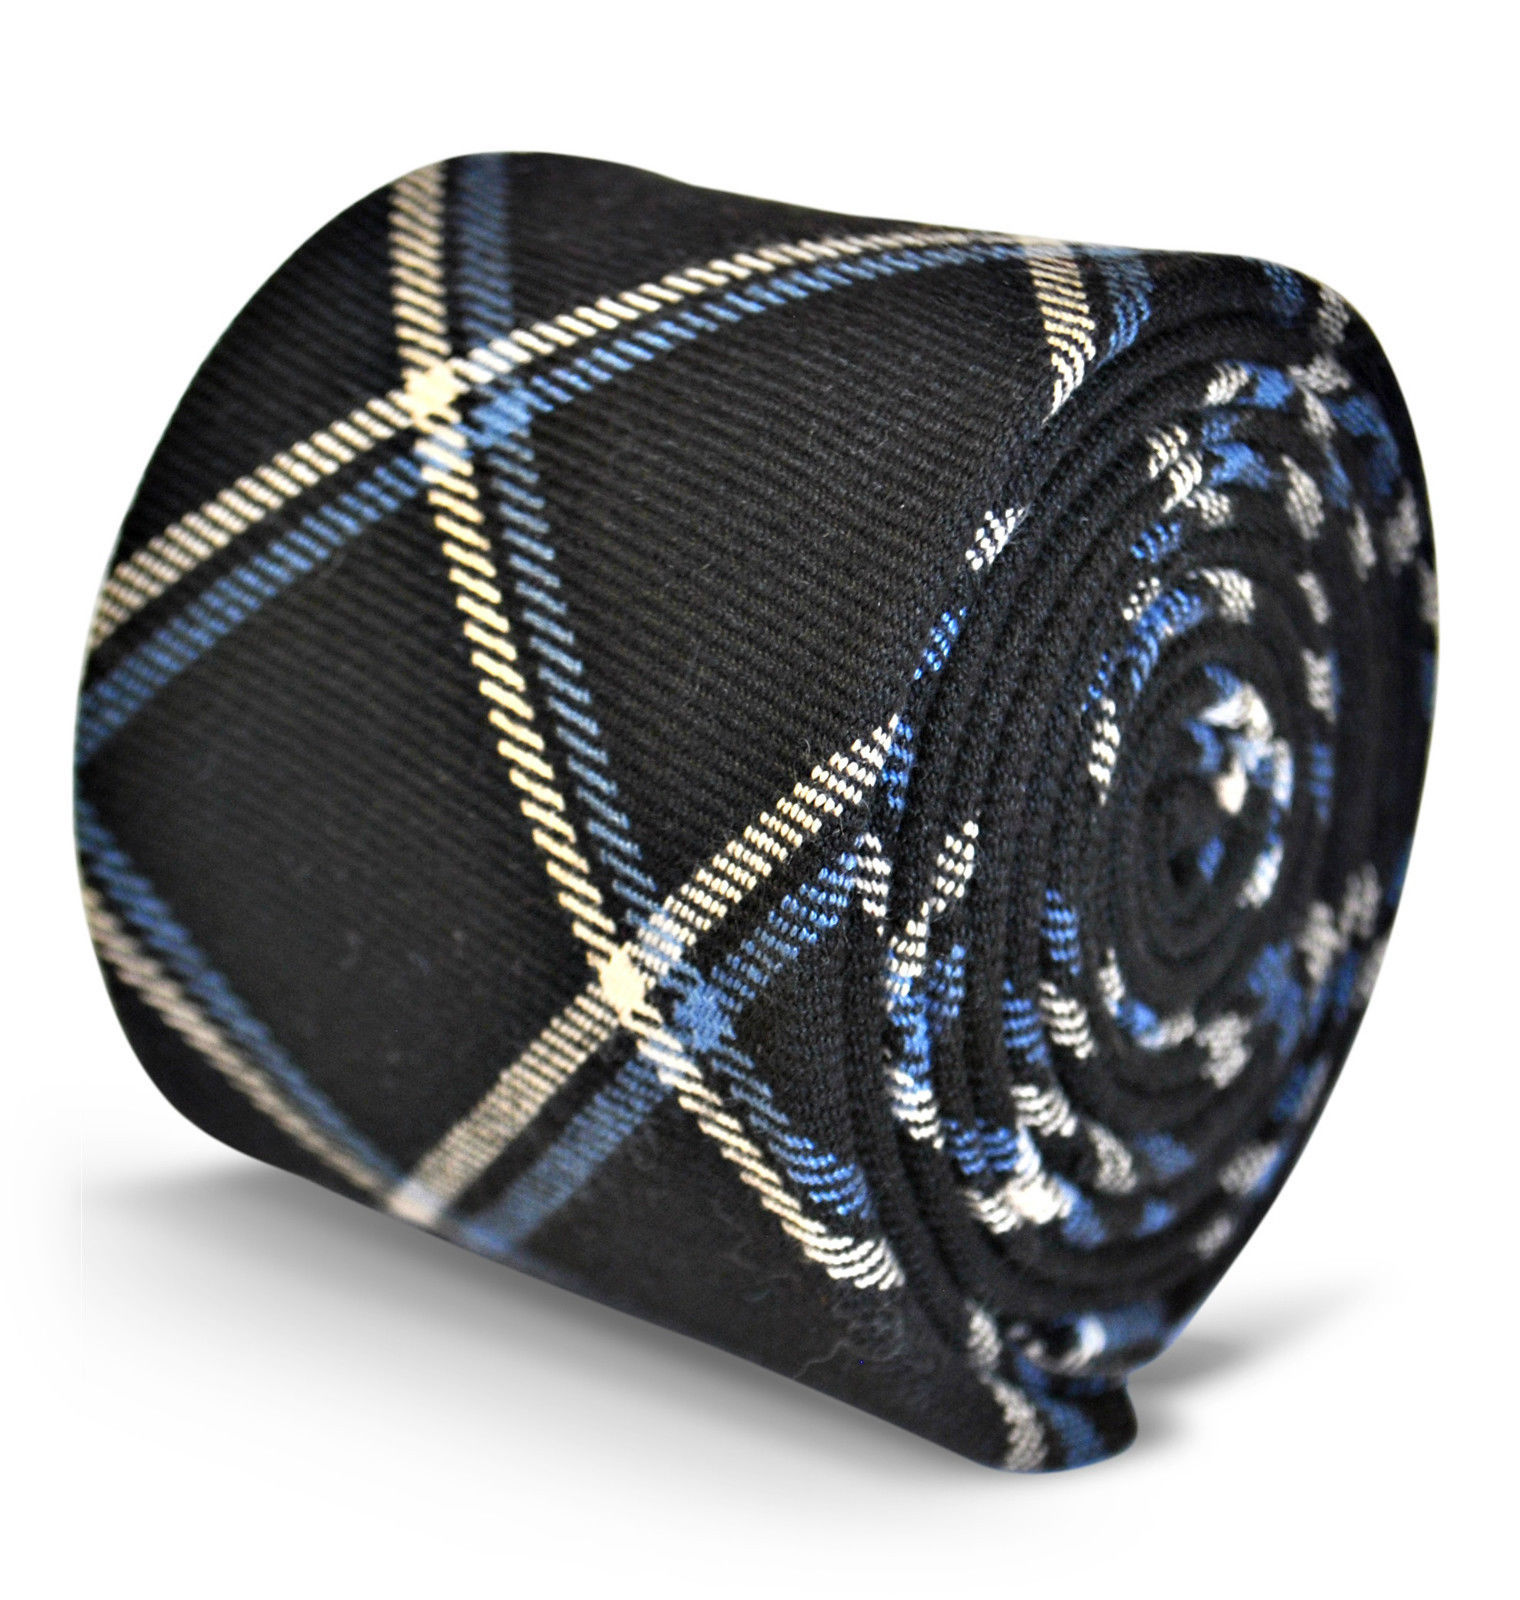 Frederick Thomas mens wool tweed tie in navy blue with white & blue check FT3120